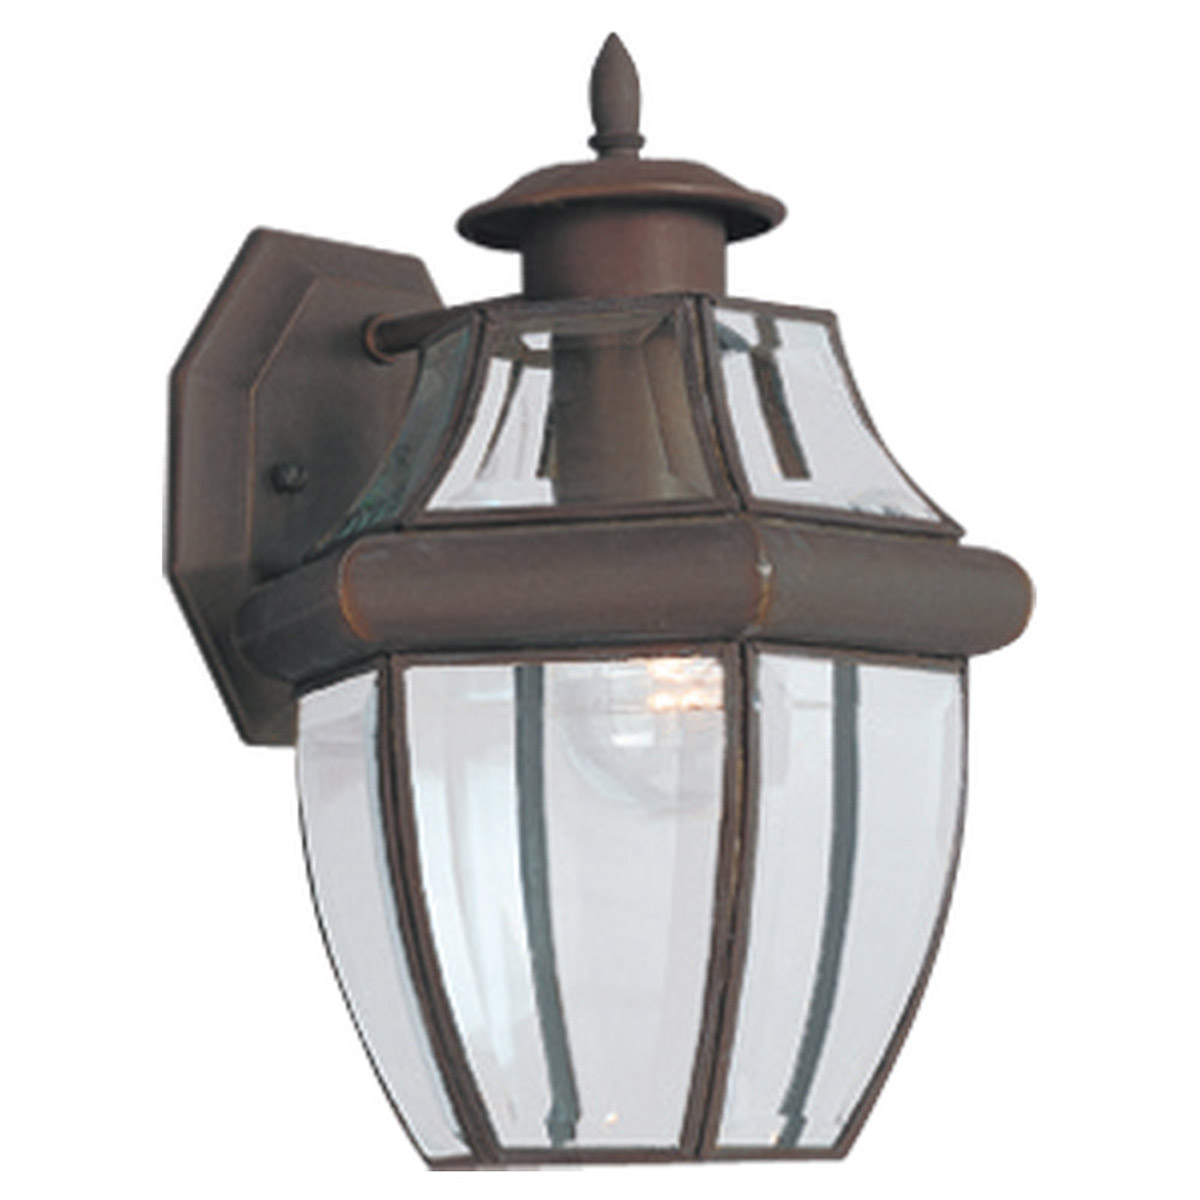 Sea Gull Lighting Lancaster 1 Light Outdoor Wall Lantern in Antique Bronze 8038-71 photo